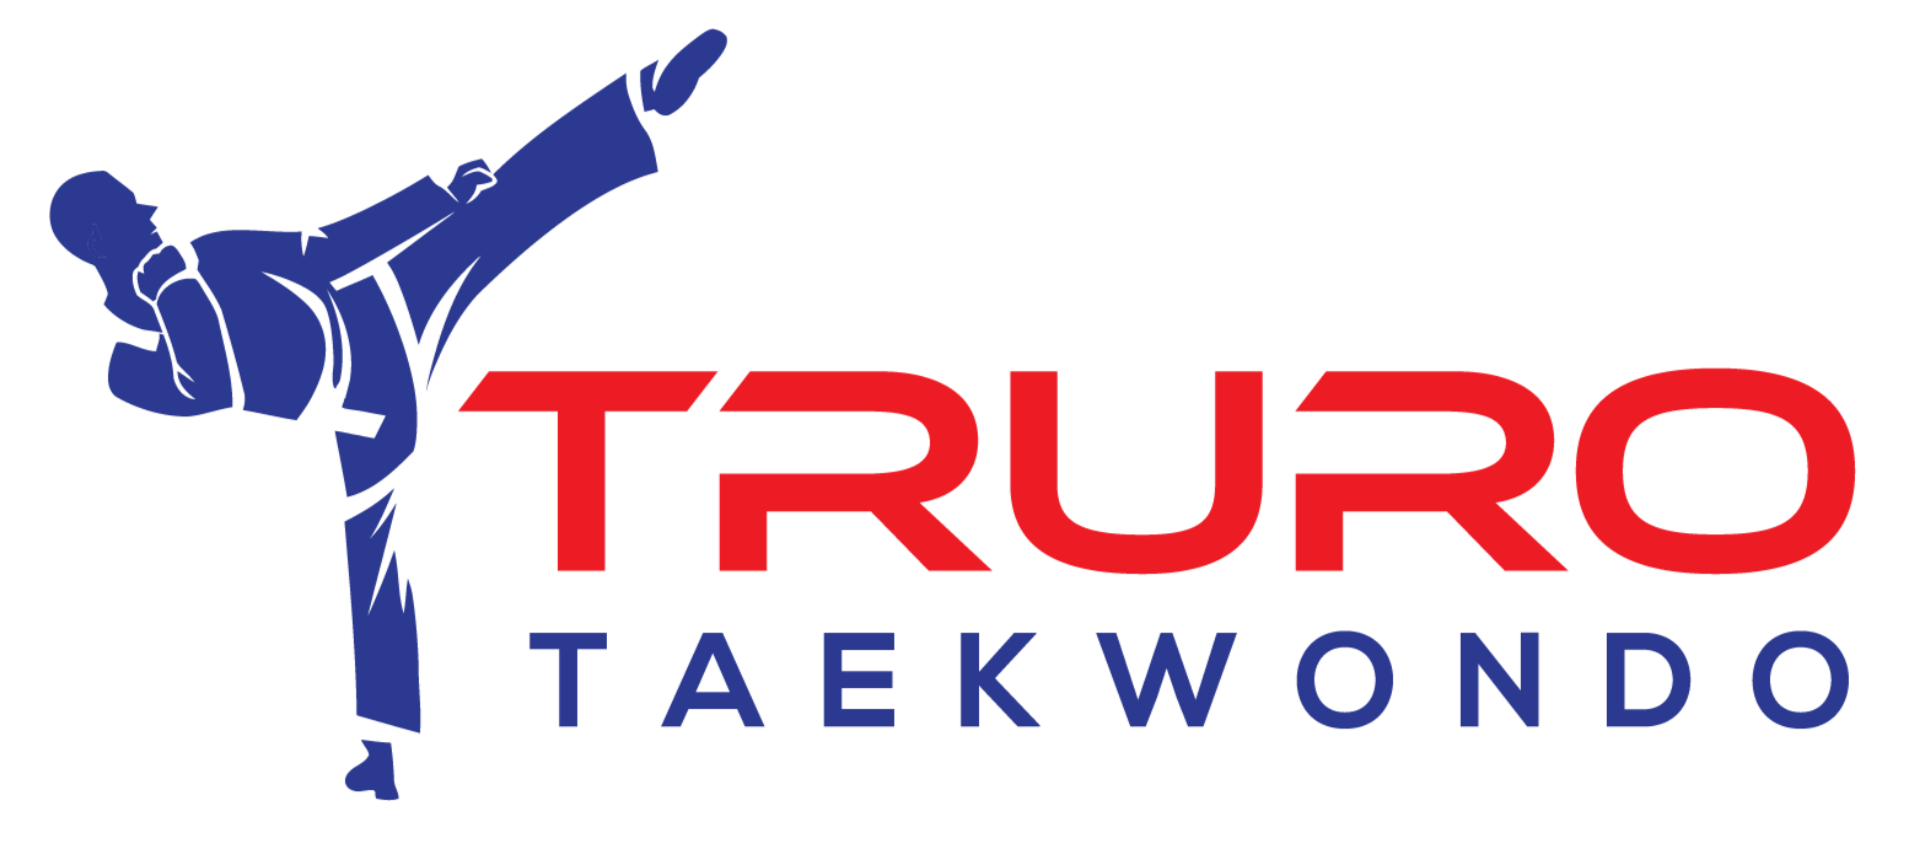 Truro Taekwondo - Official website